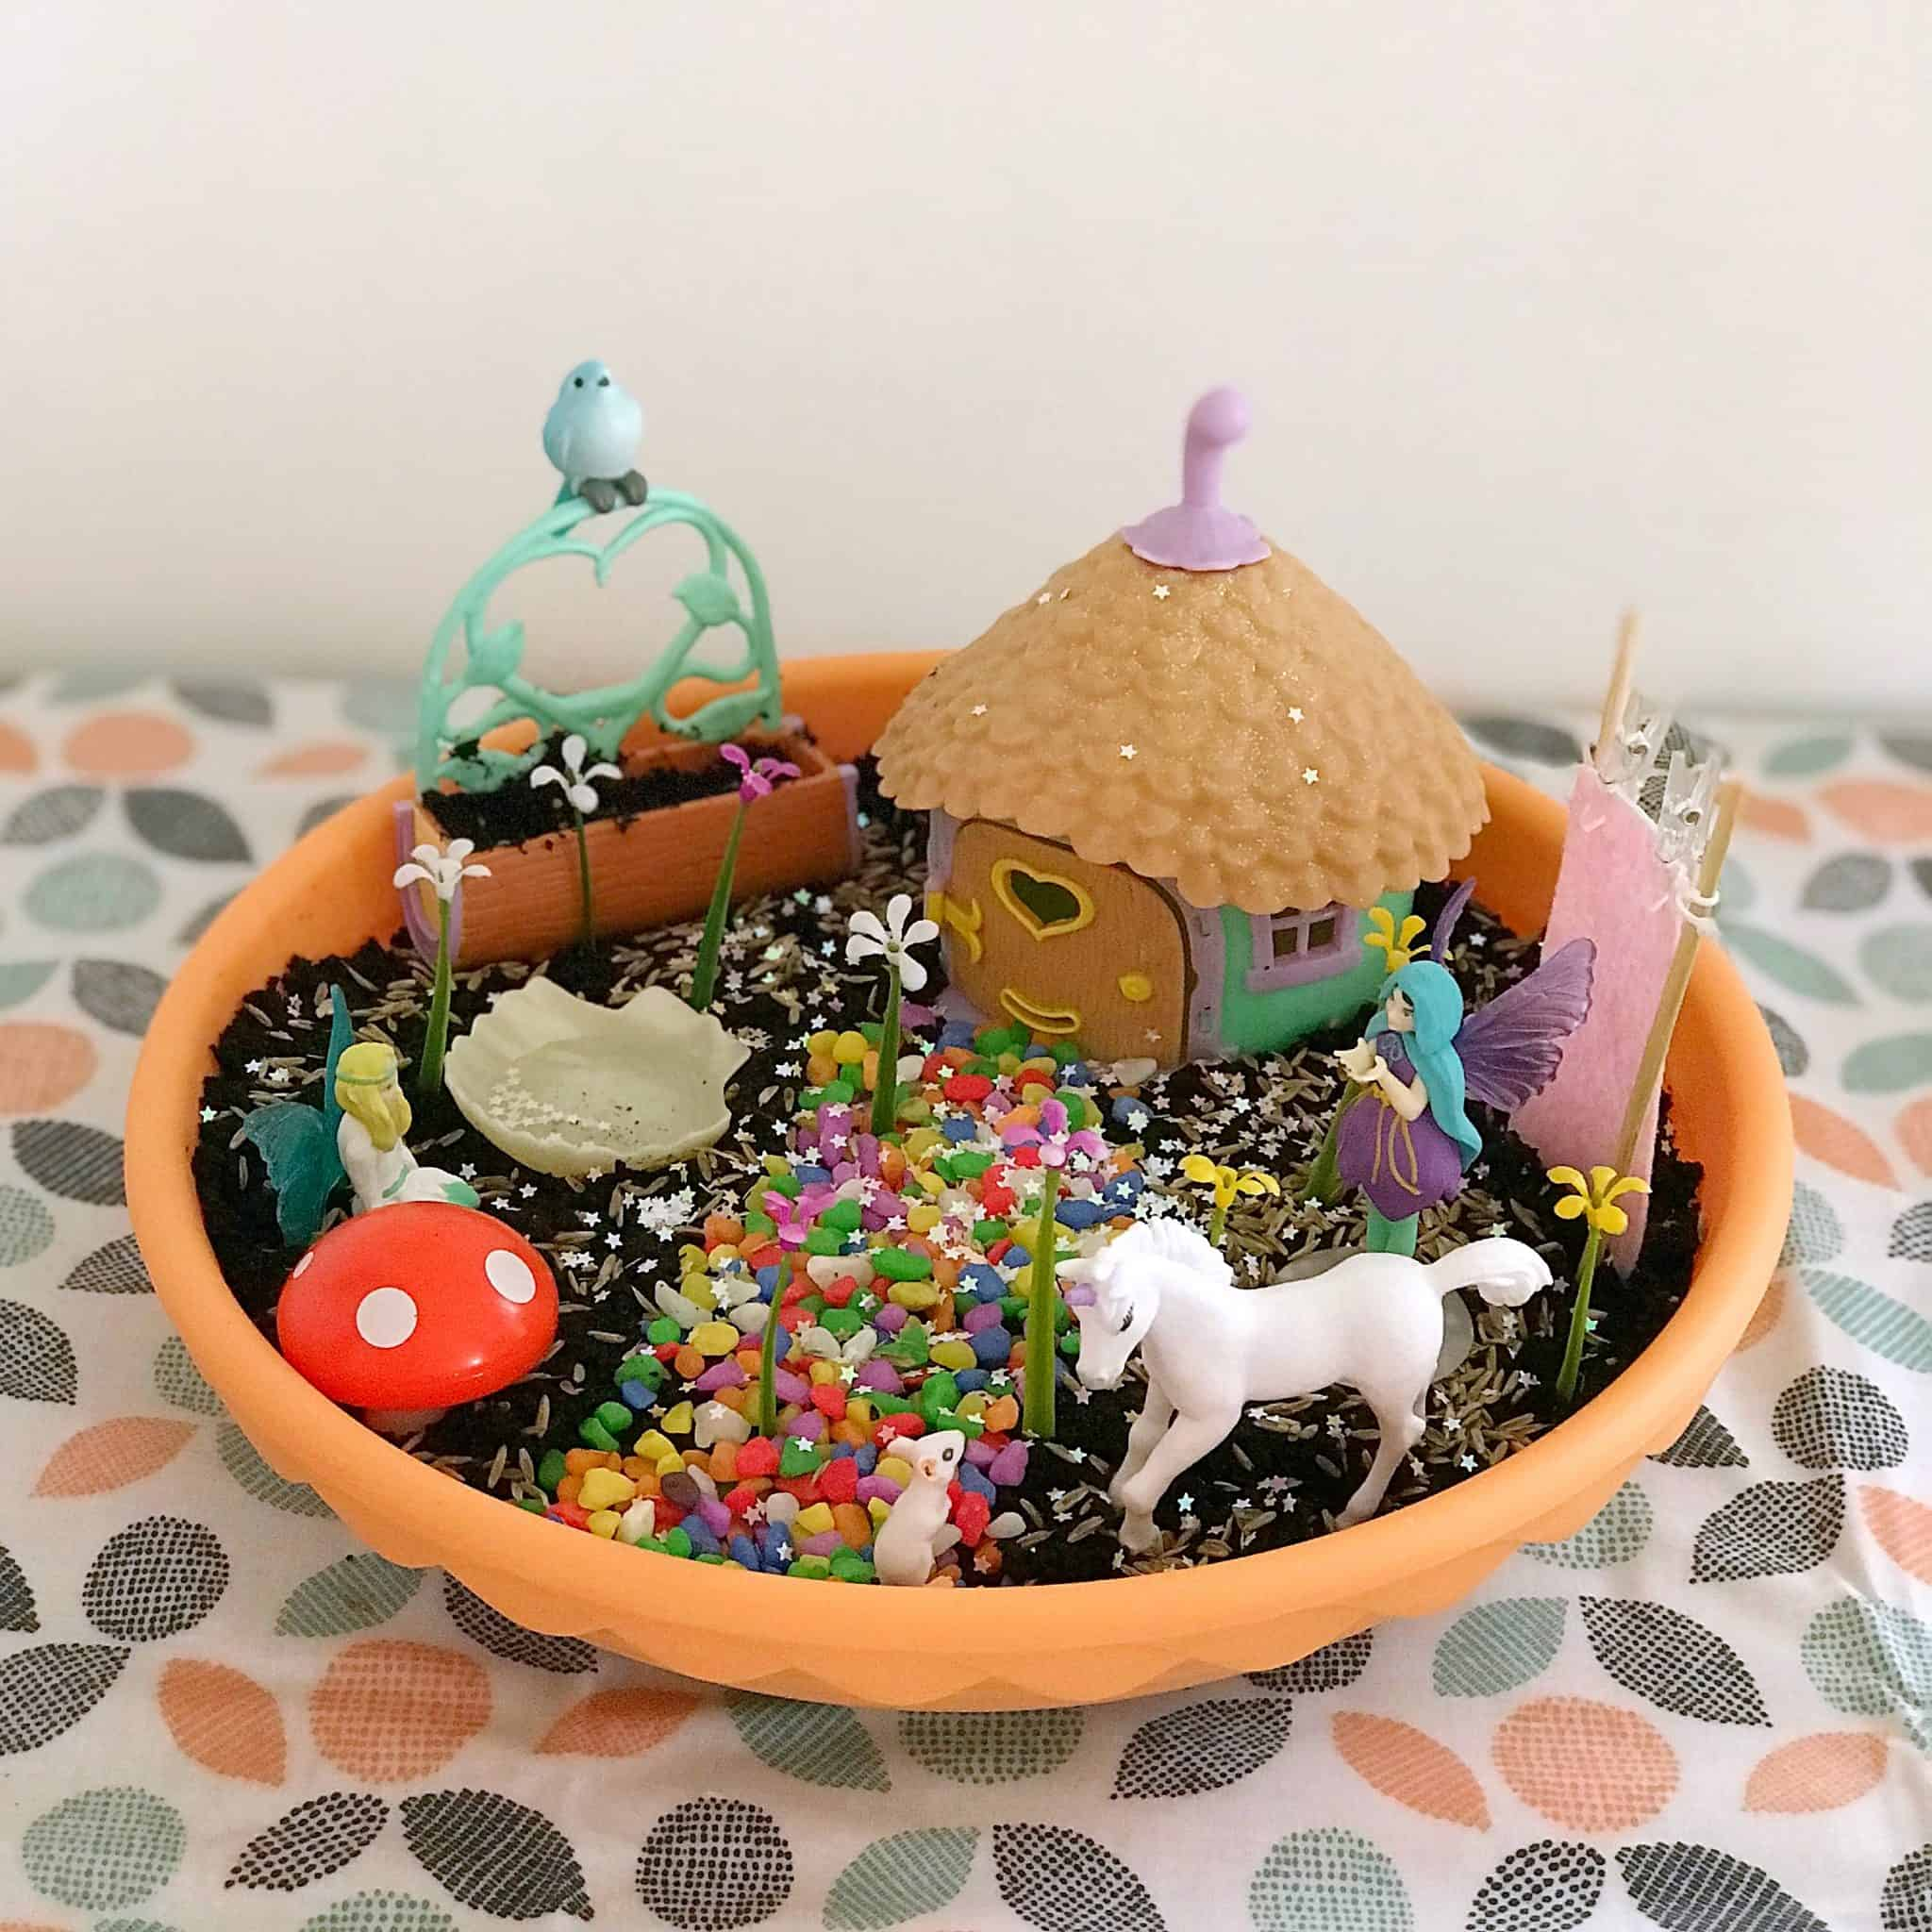 My Fairy Garden Magical Fairy Garden with Unicorn